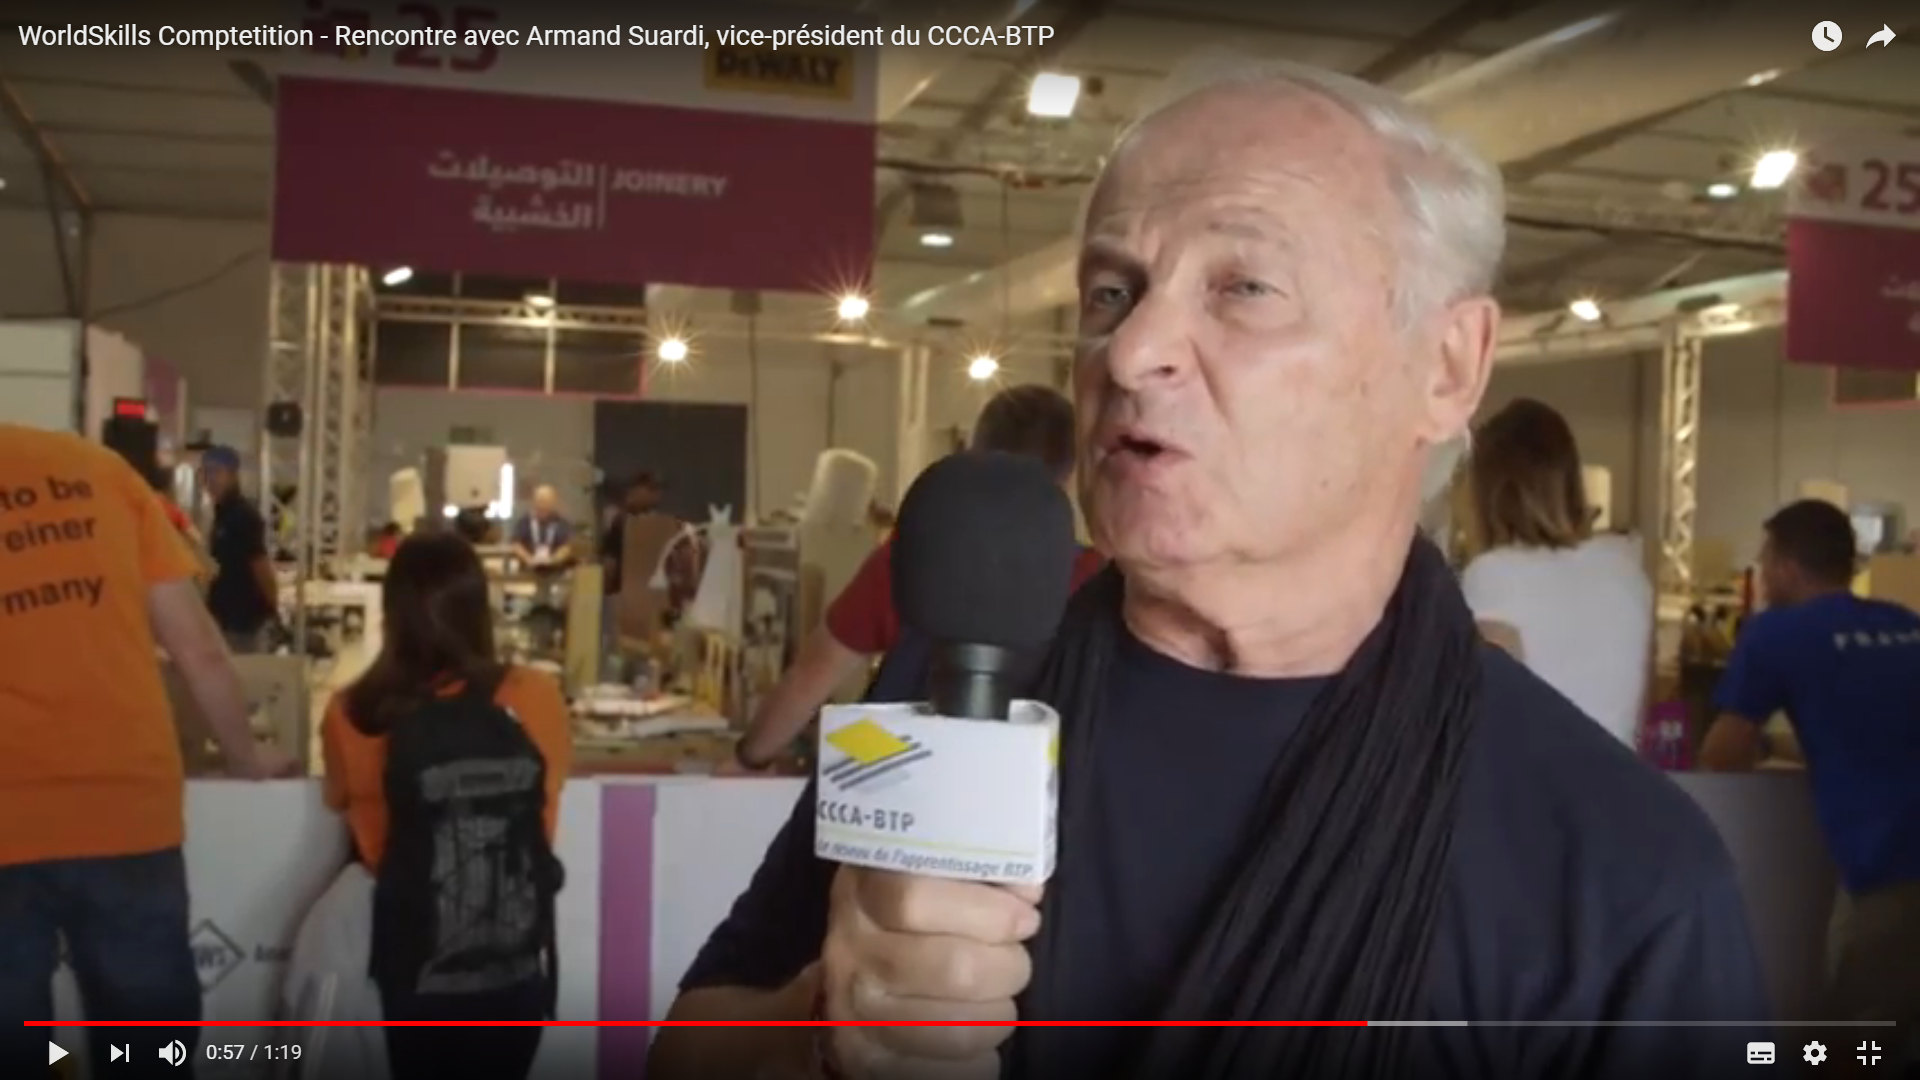 Interview d'Armand Saurdi vice président du CCCA BTP au WorldSkills 2017